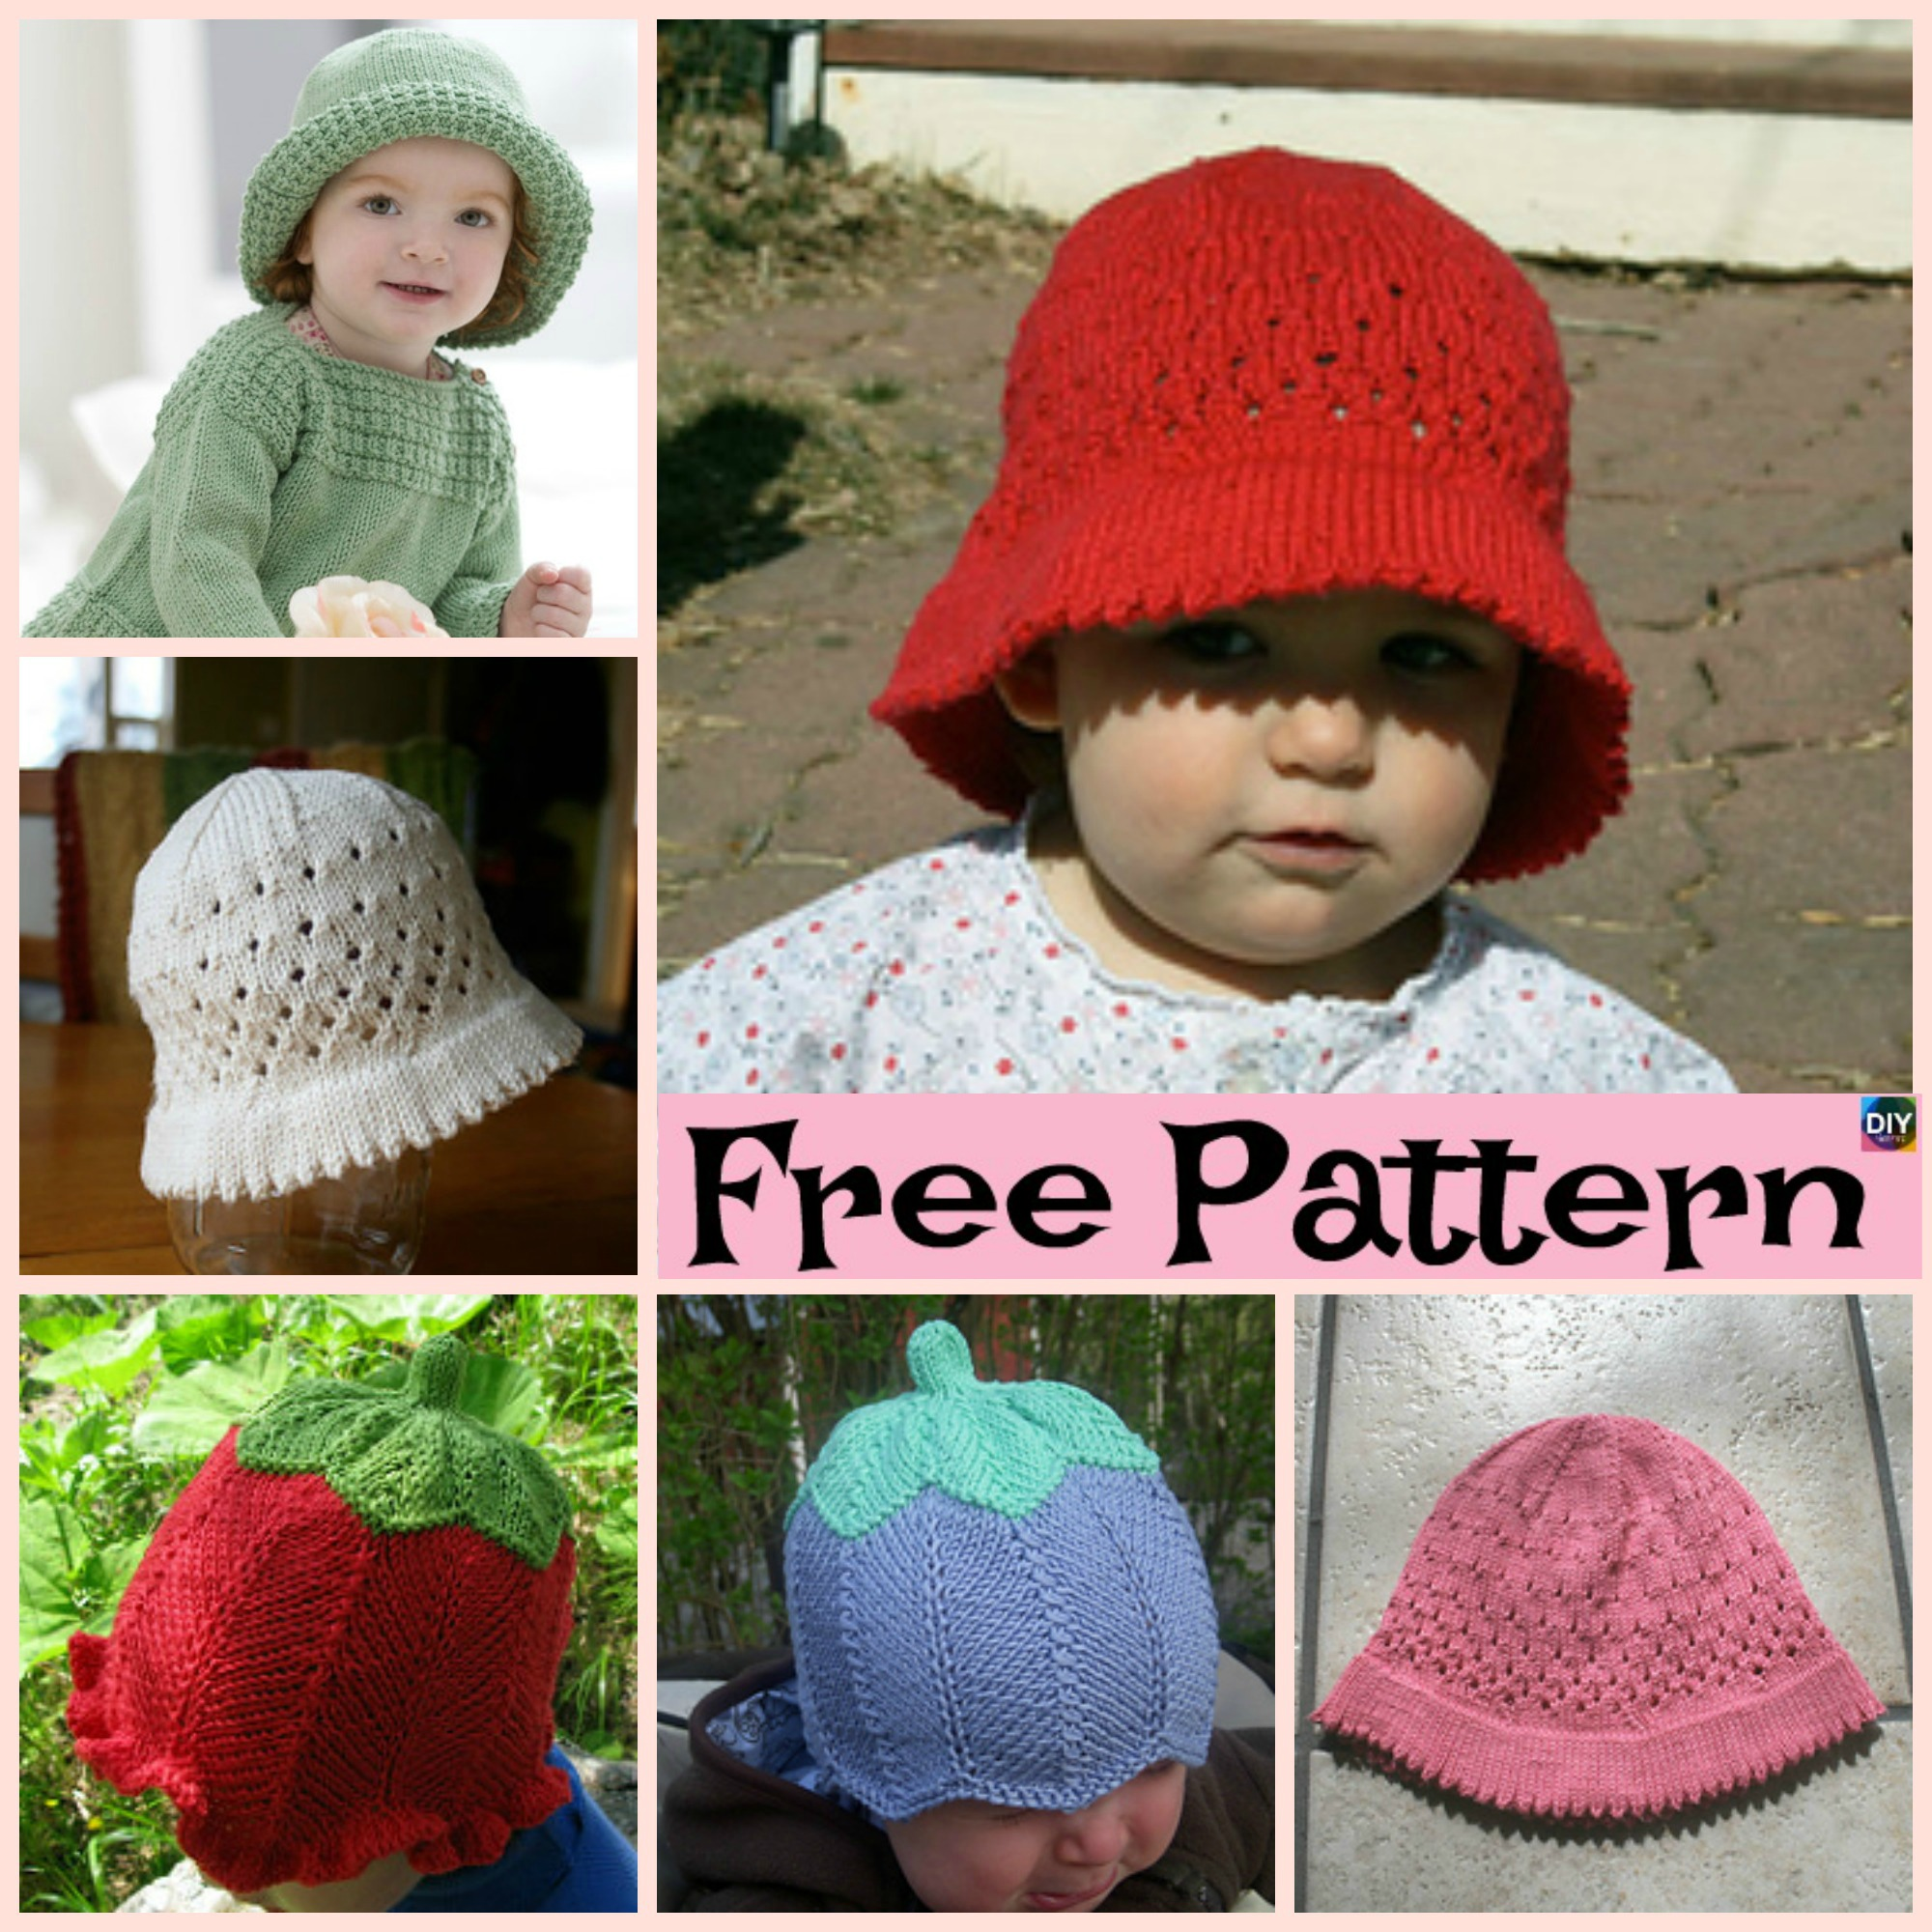 Cute Knitted Baby Sun Hat - Free Patterns - DIY 4 EVER